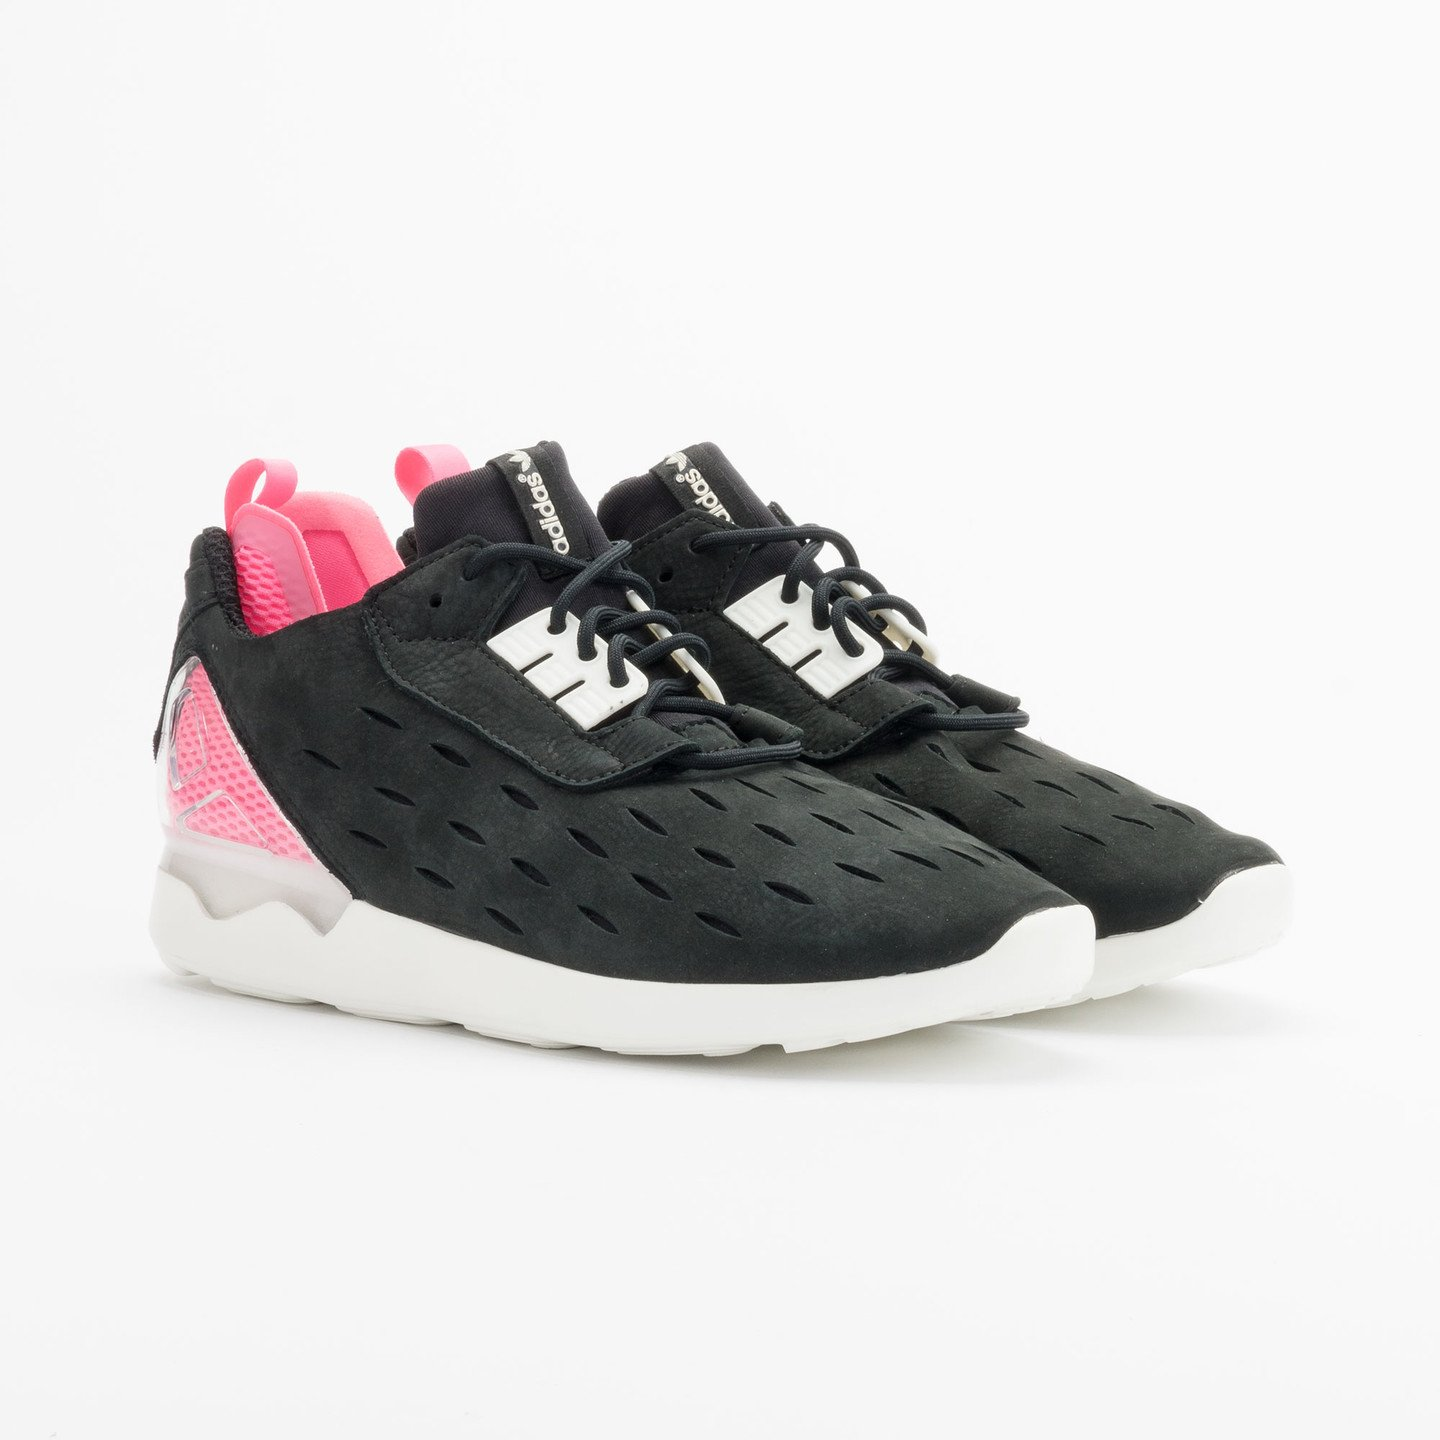 Adidas ZX 8000 Blue Boost Black/Hot-Pink/White B25872